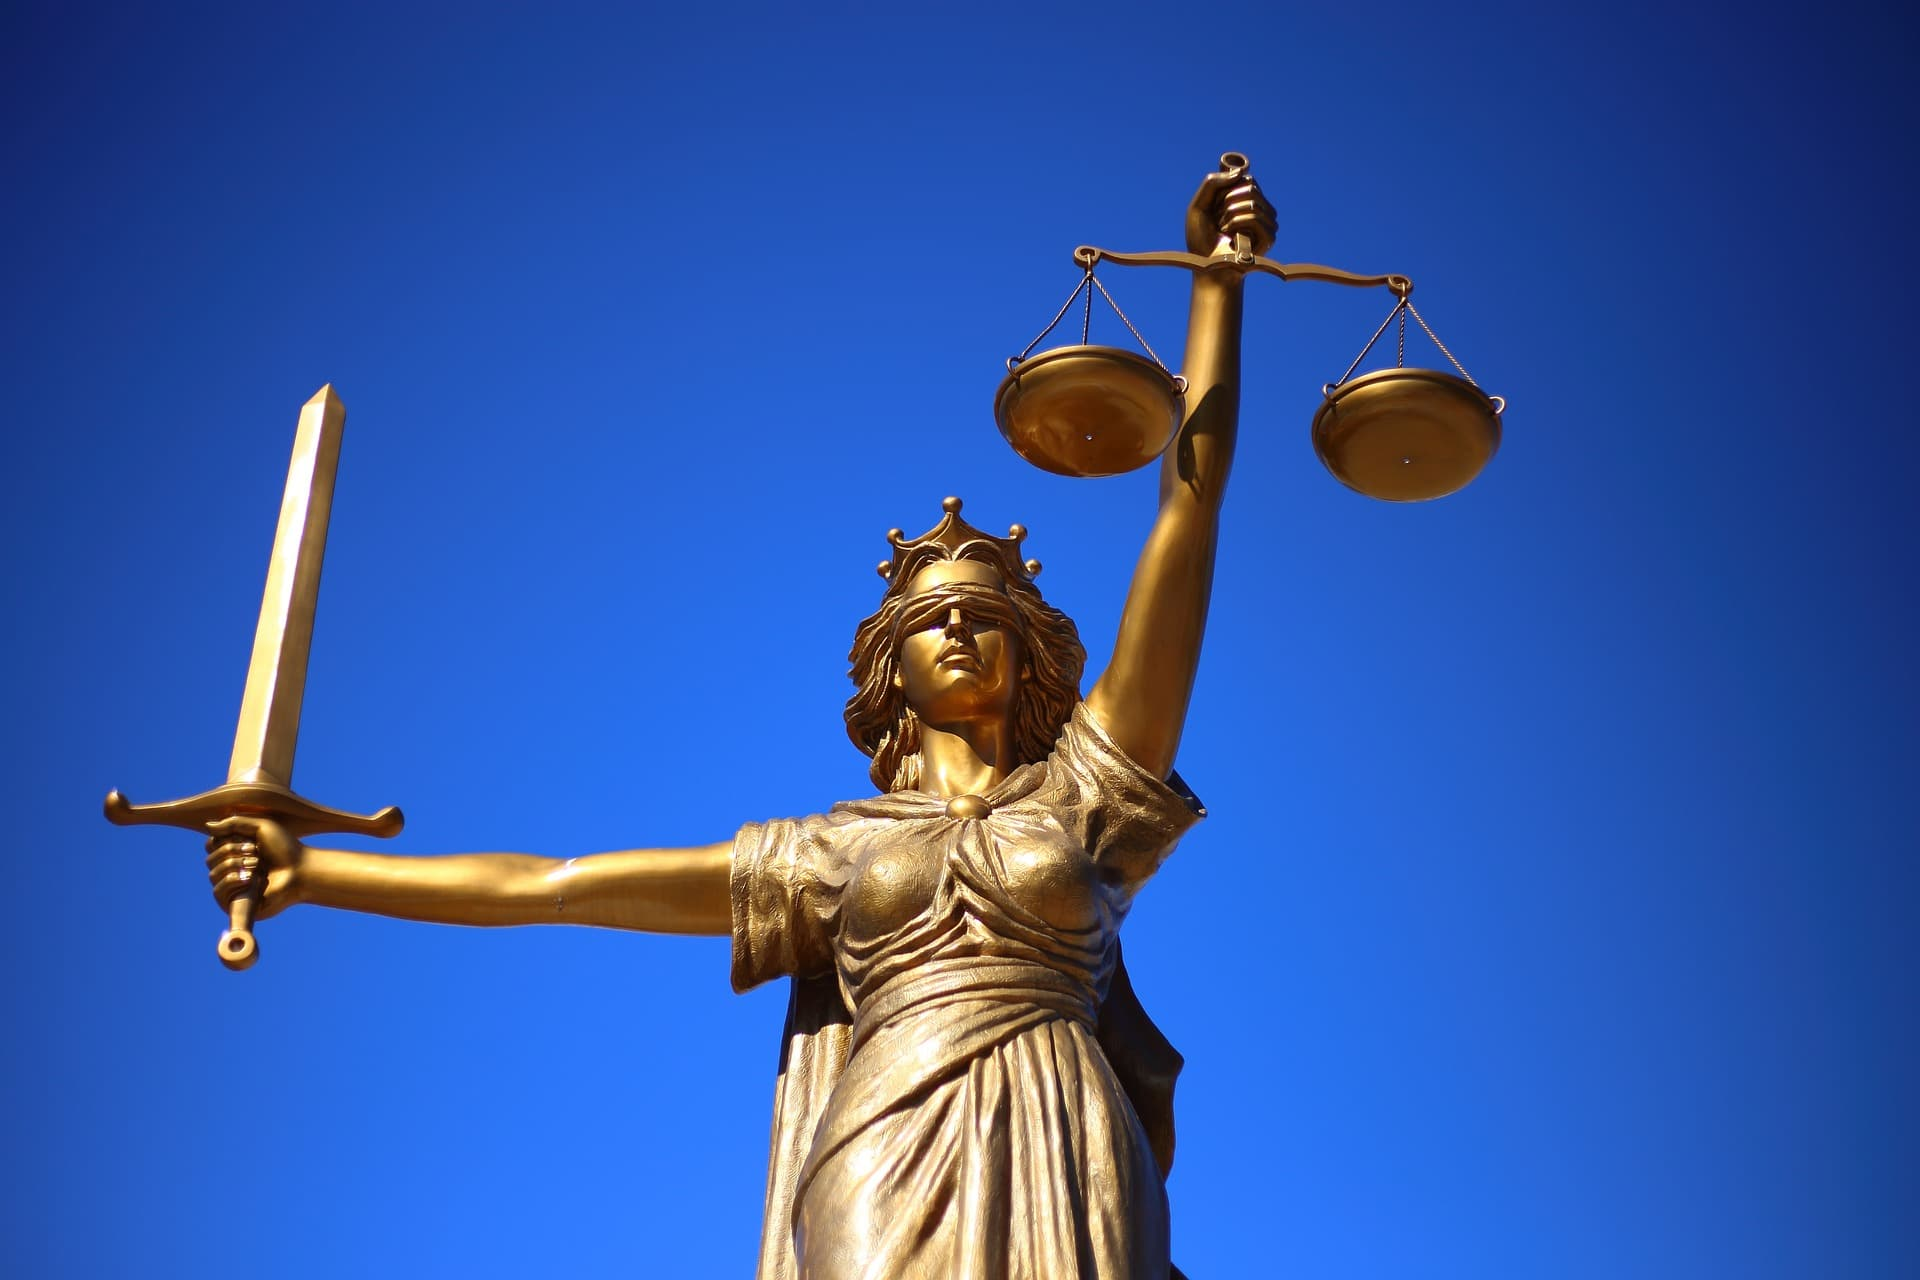 lawyer withdraw from representation - lady justice with scales and sword